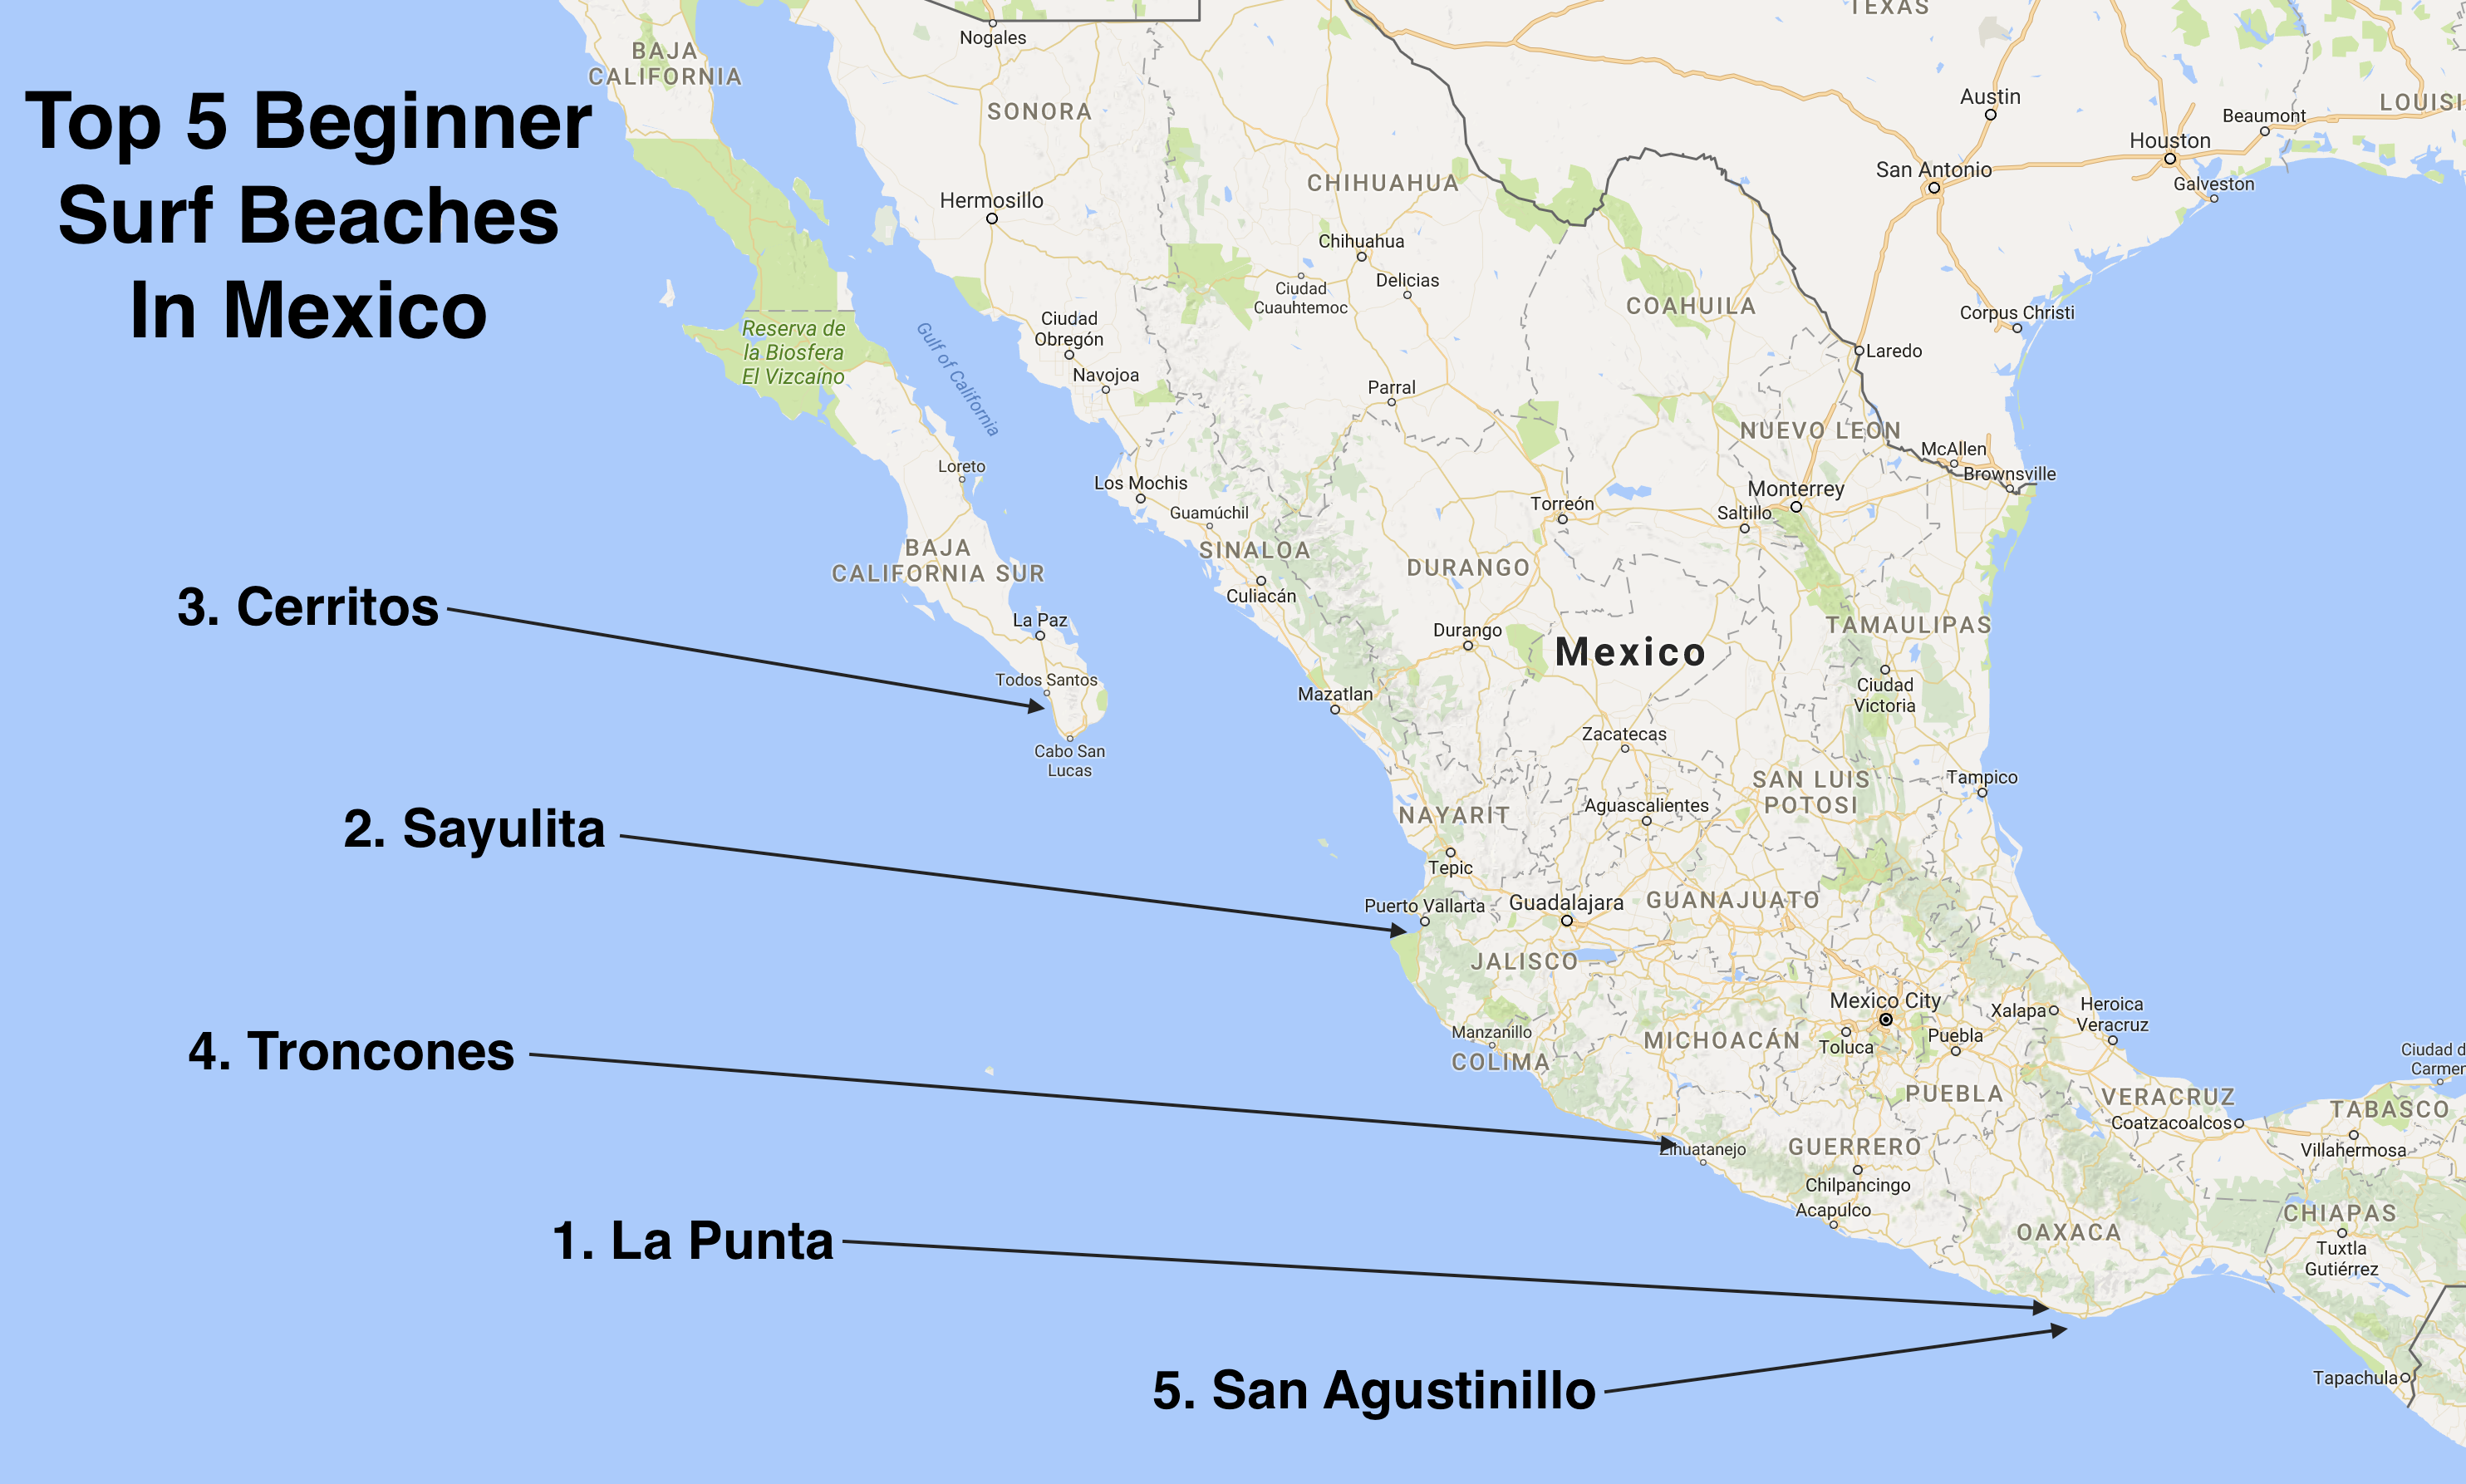 Guajaca Mexico Map.Surf Blog Top 5 Beginner Surf Beaches In Mexico